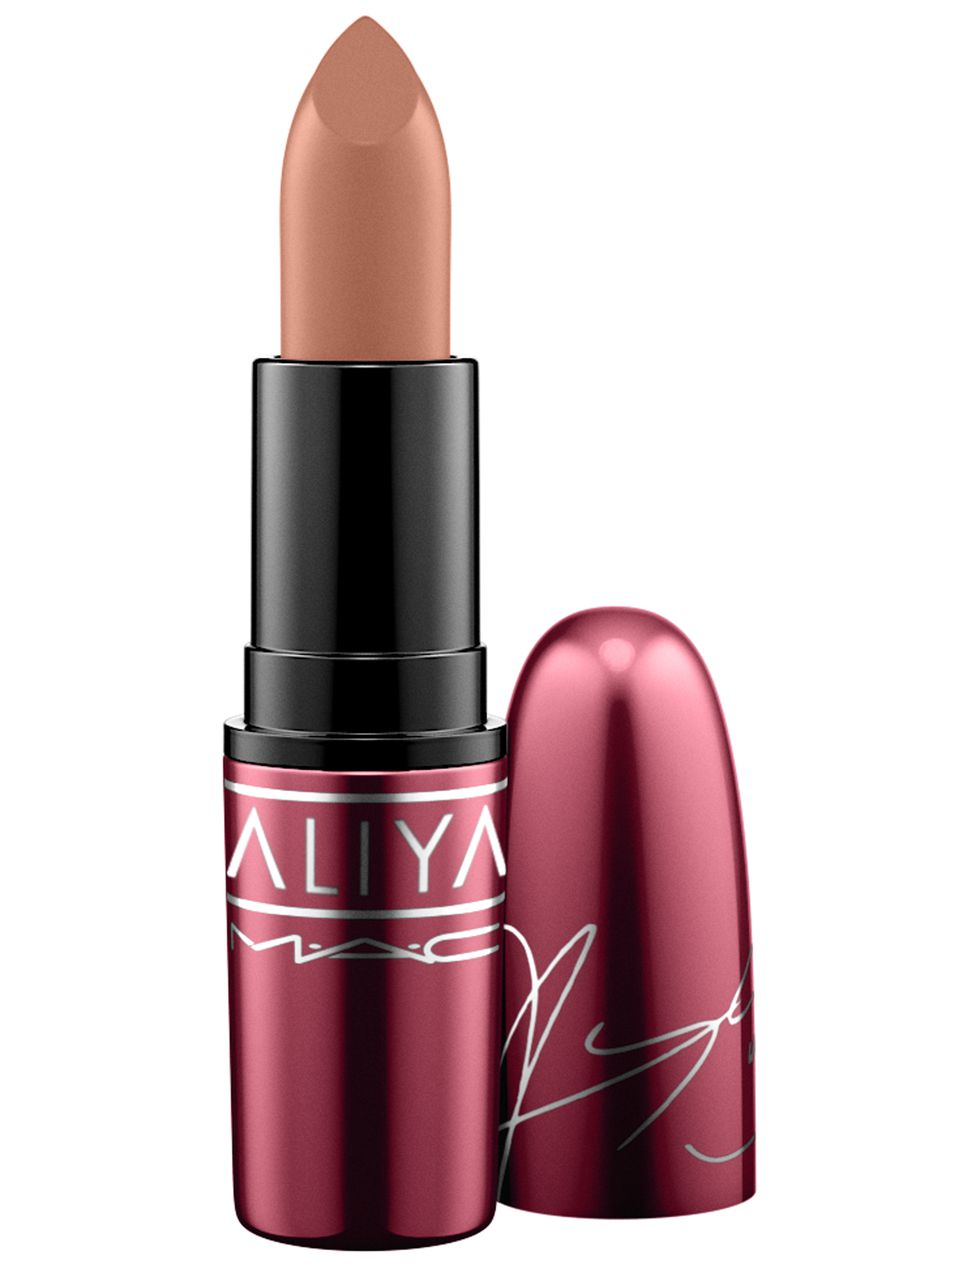 Try Again Lipstick, $19